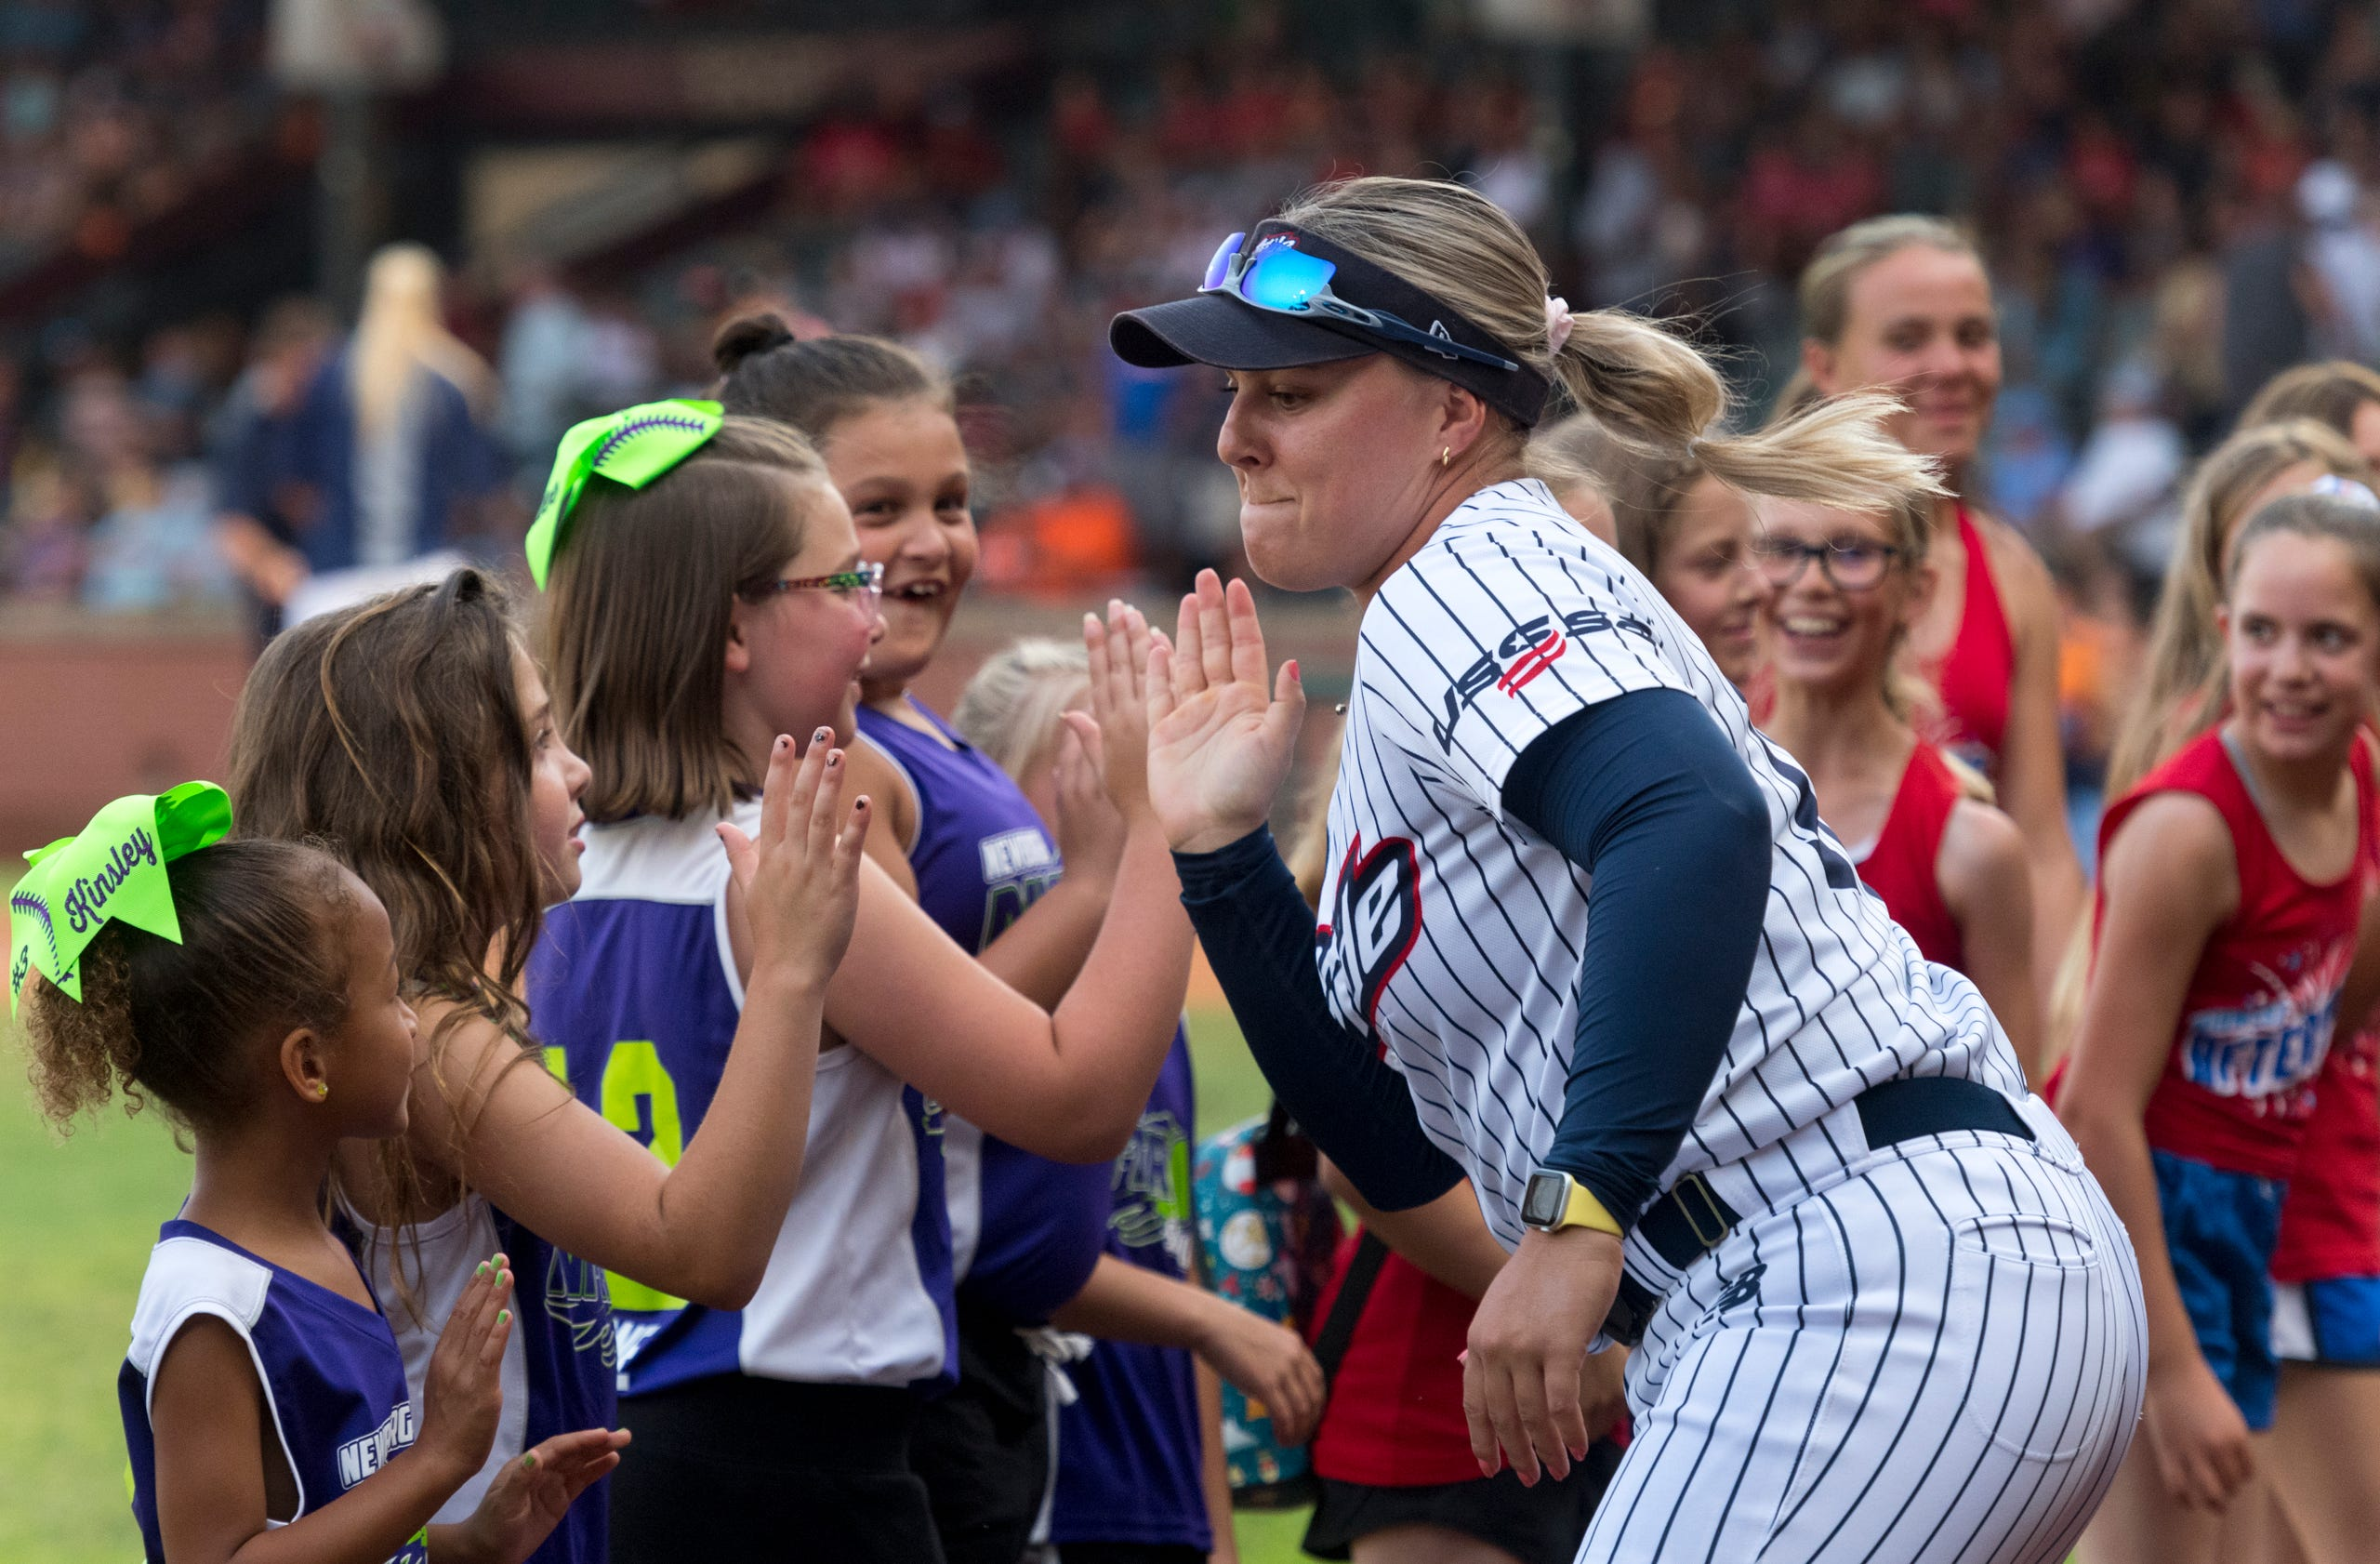 USSSA Pride's Amanda Lorenz (18) runs down the line giving high fives to the Newburgh Nitro softball team ahead of the exhibition game between USSSA Pride and Team Florida at Bosse Field in Evansville, Ind., Wednesday evening, July 14, 2021.